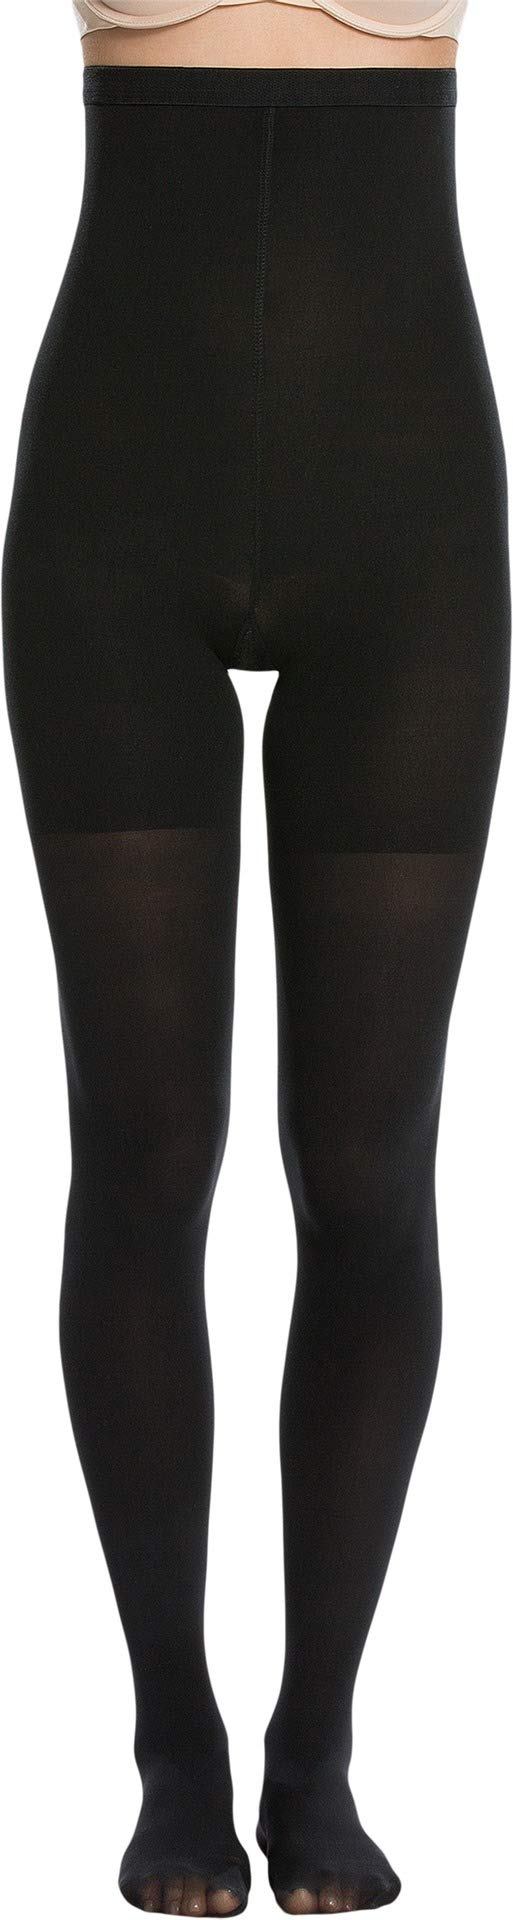 Spanx Women's High-Waisted tight-end tights Very Black E by SPANX